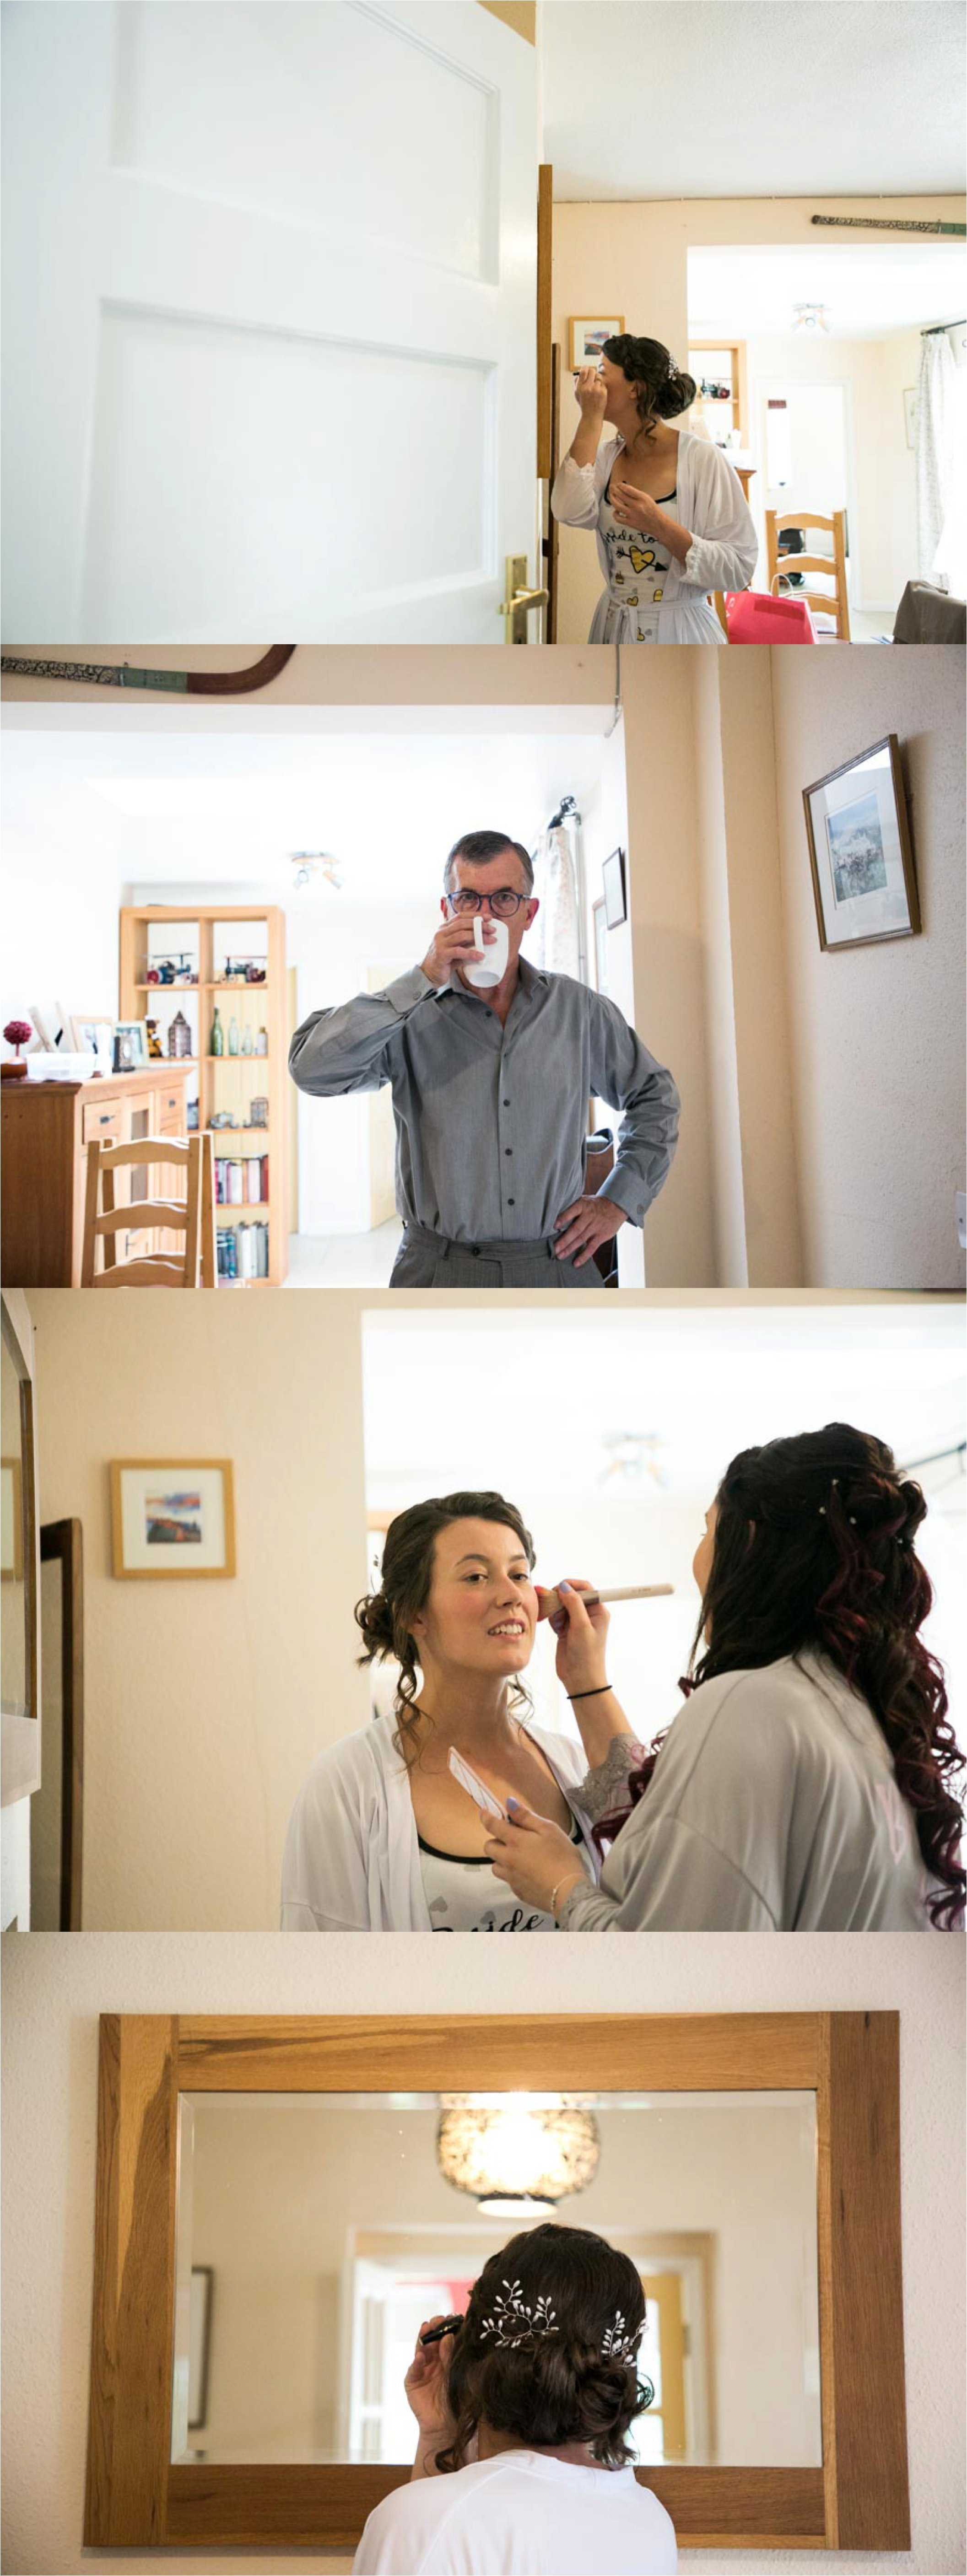 bride getting ready at home with family, suffolk wedding photography